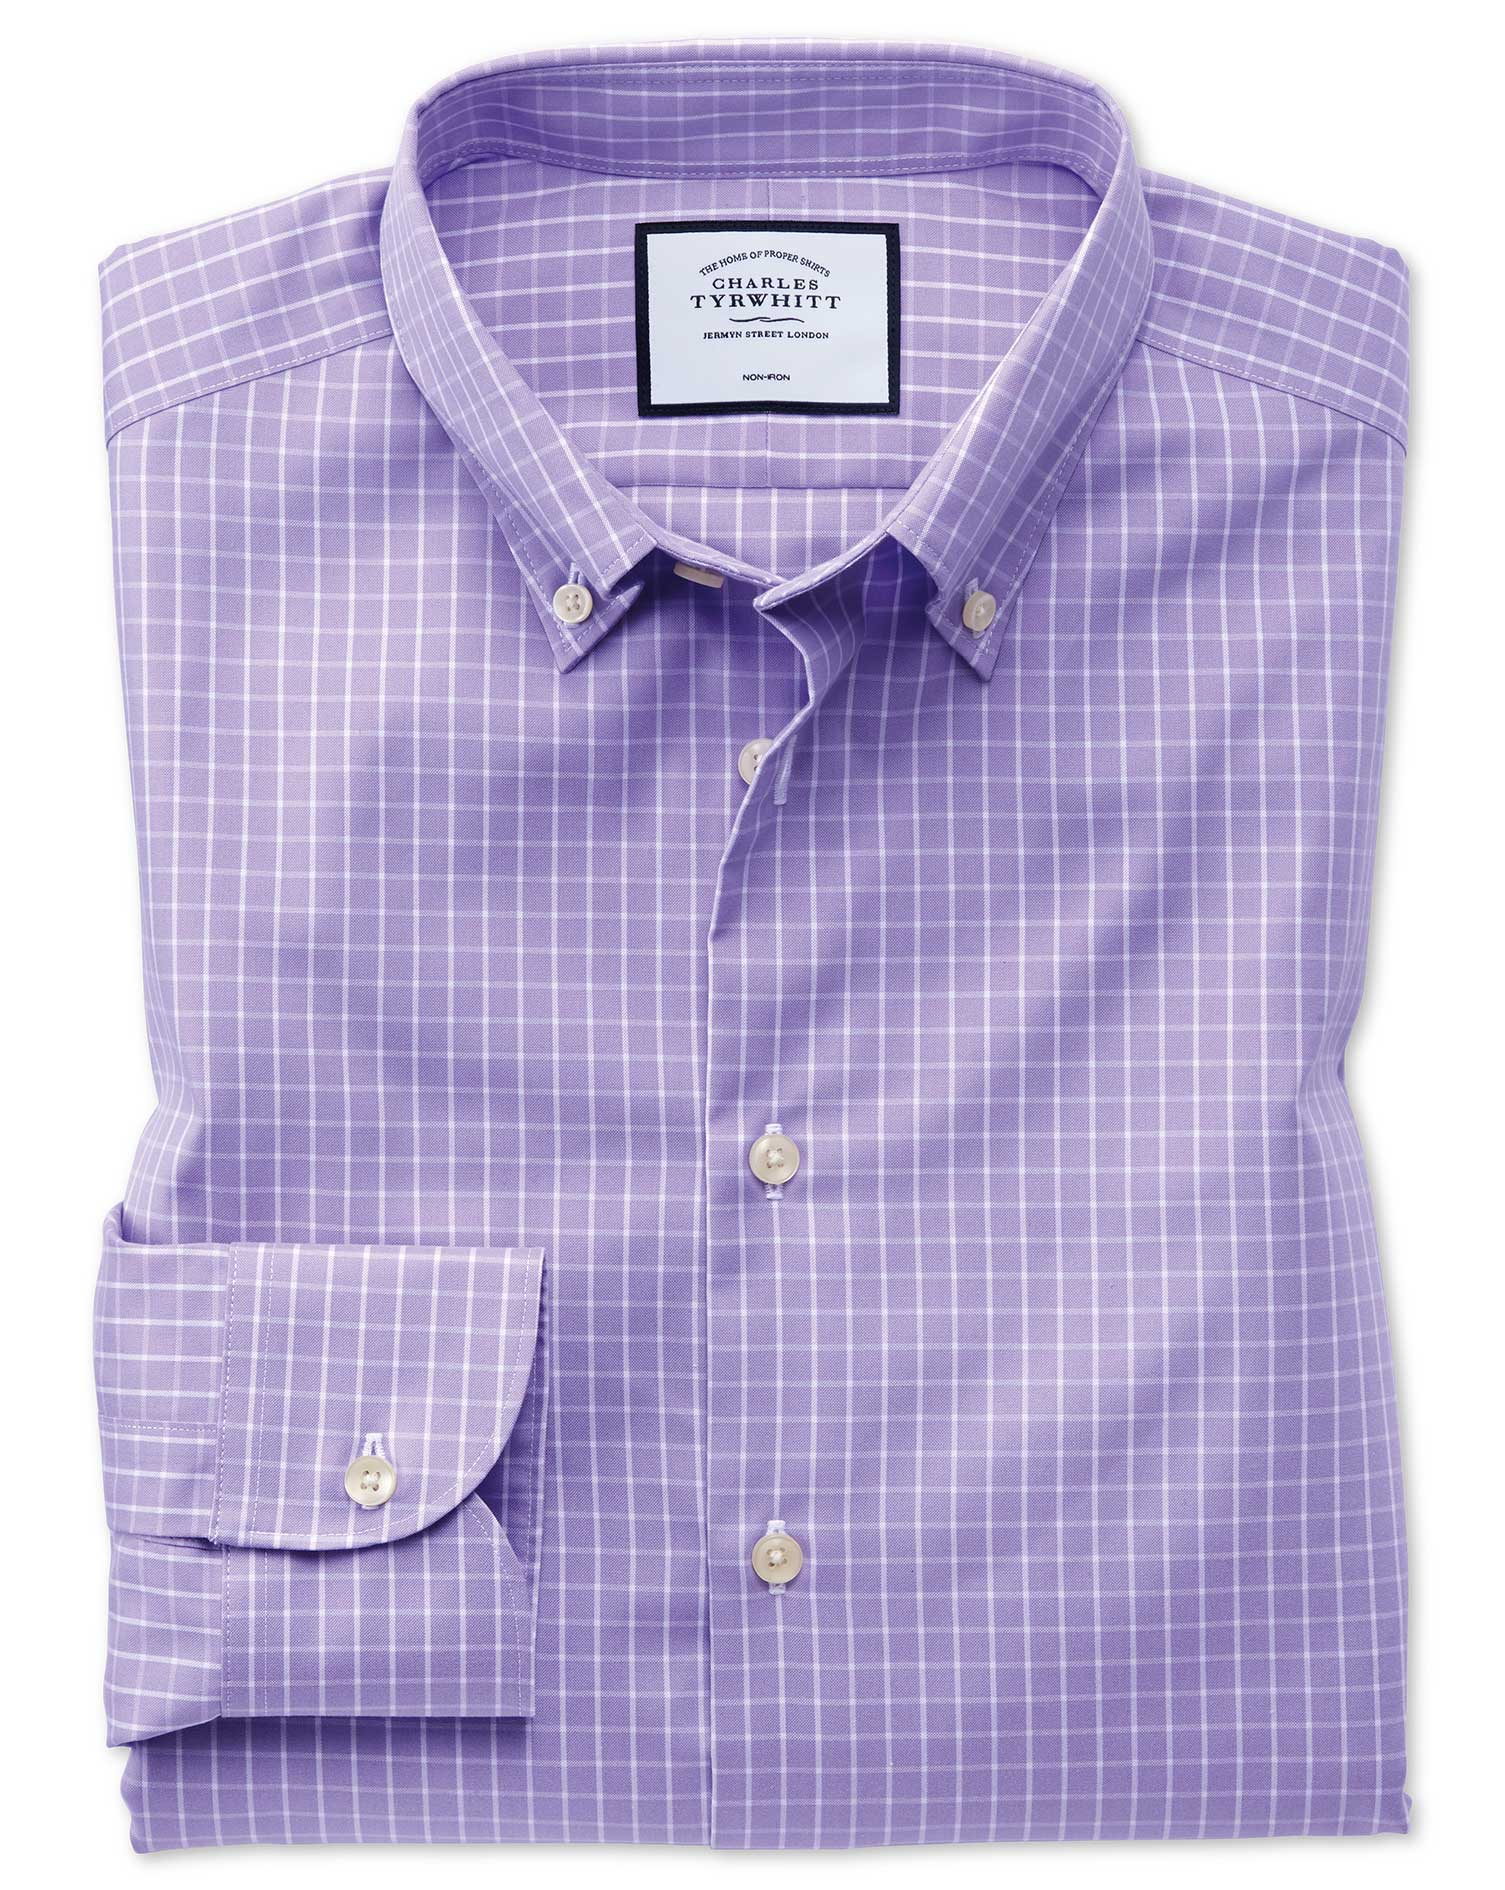 Classic Fit Business Casual Non-Iron Button-Down Lilac Cotton Formal Shirt Single Cuff Size 16.5/33